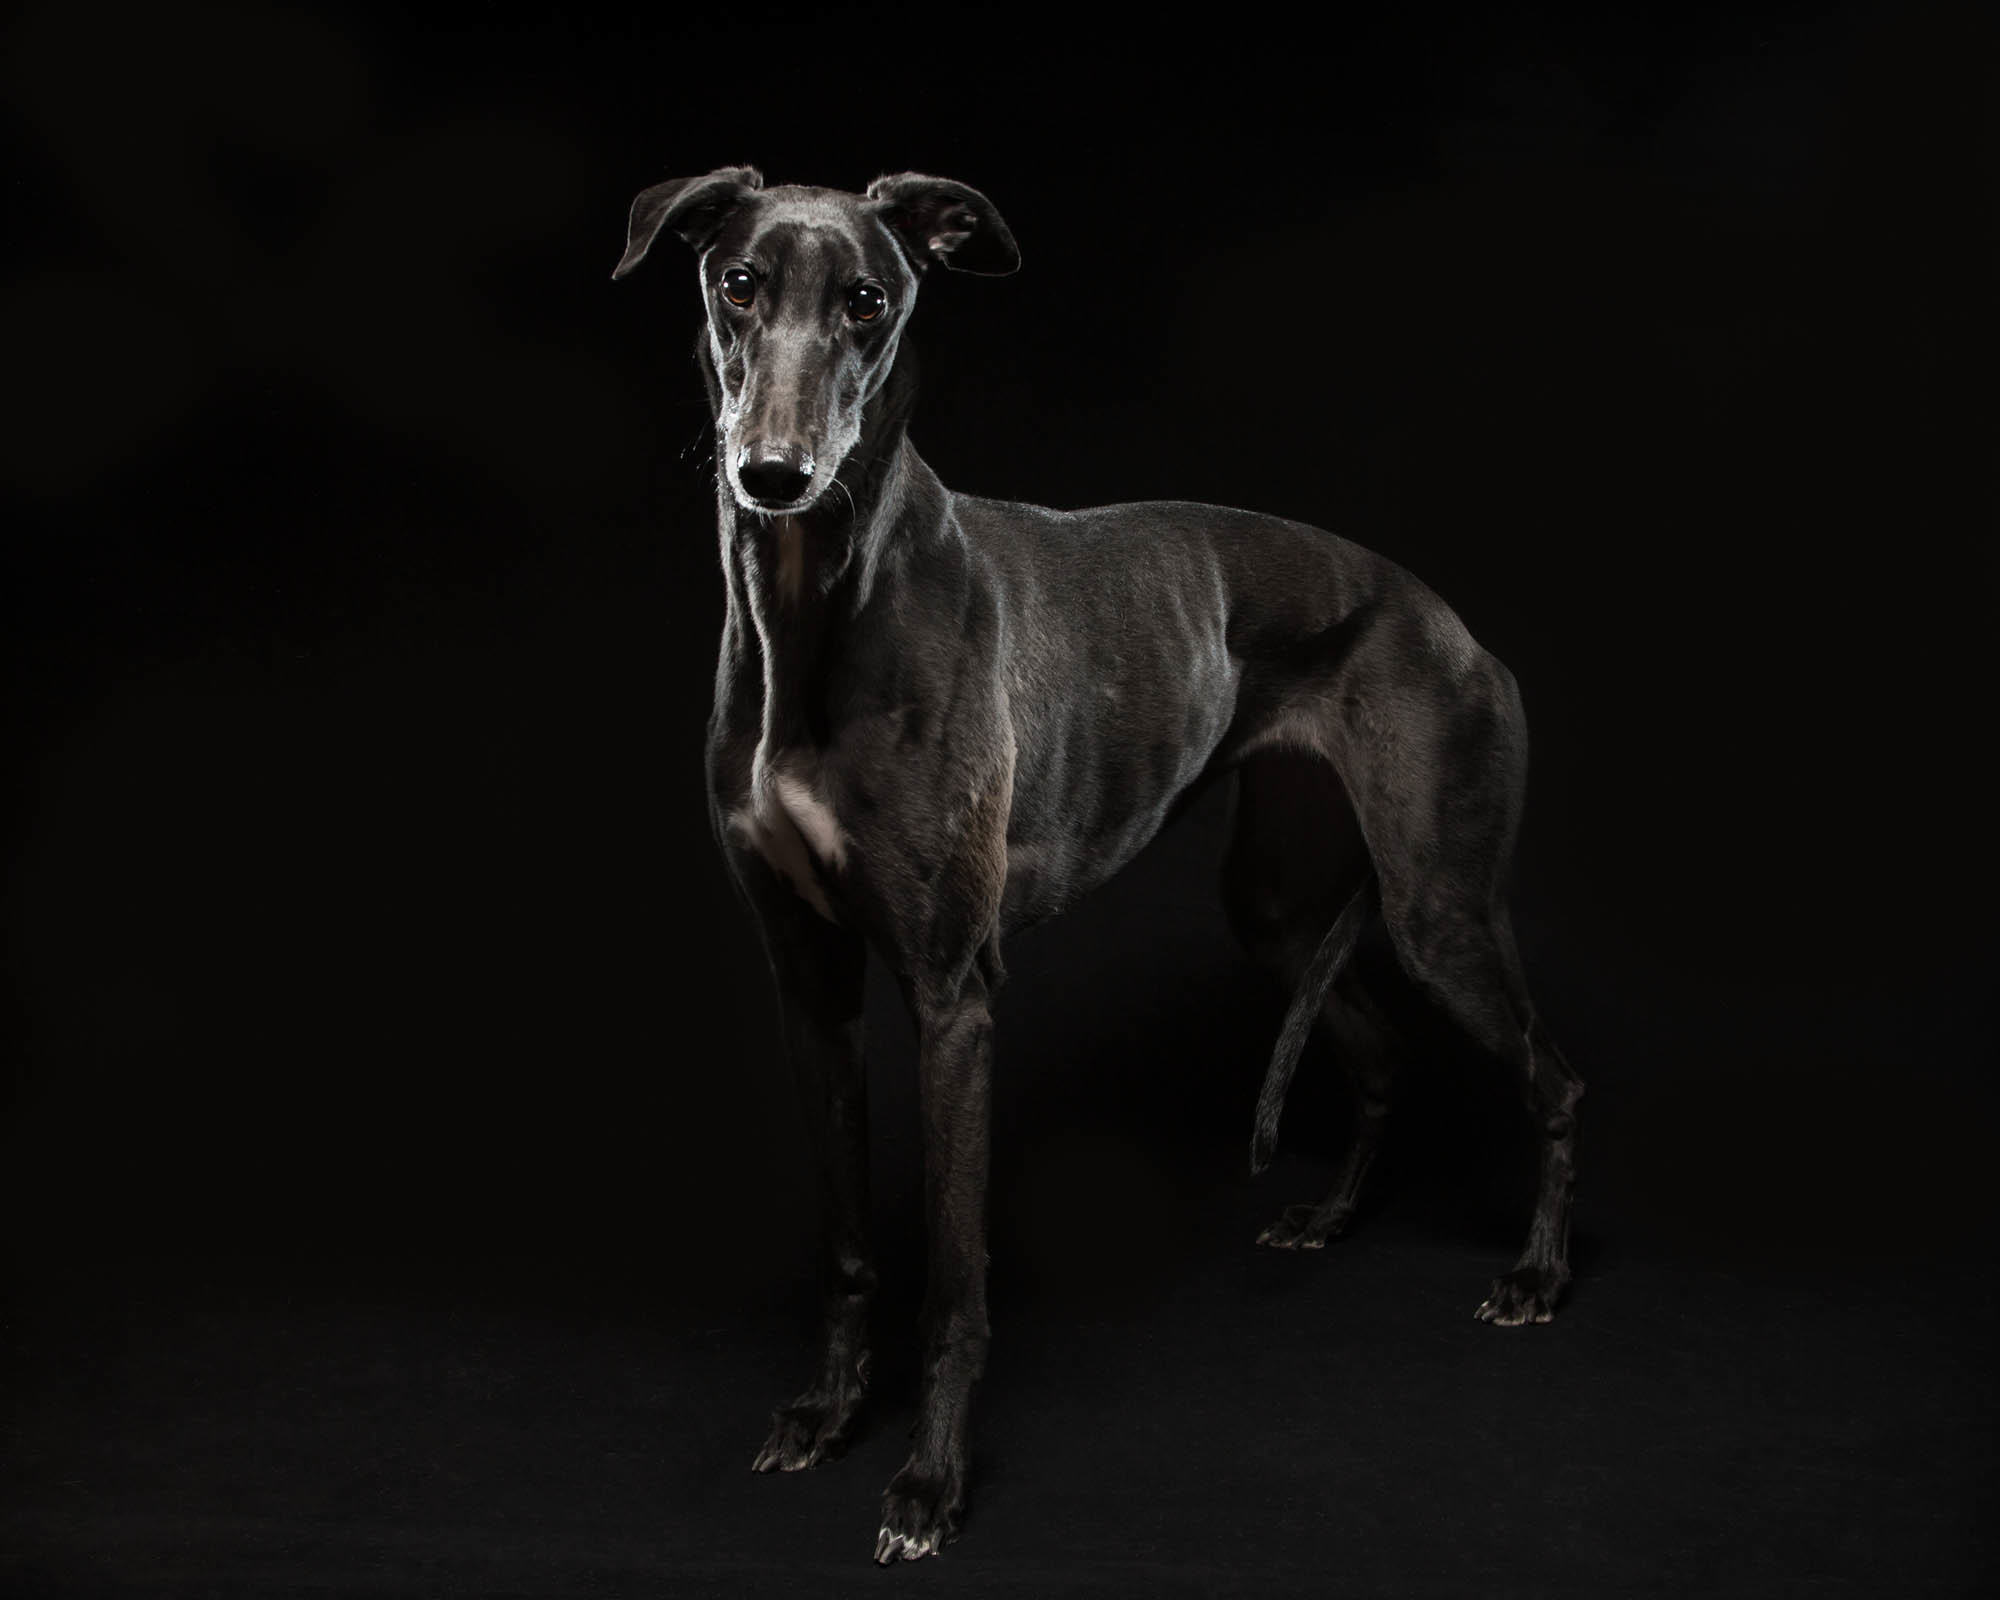 Fred Levy - Photographer | New Blog for Black Dogs Project - Fred ...